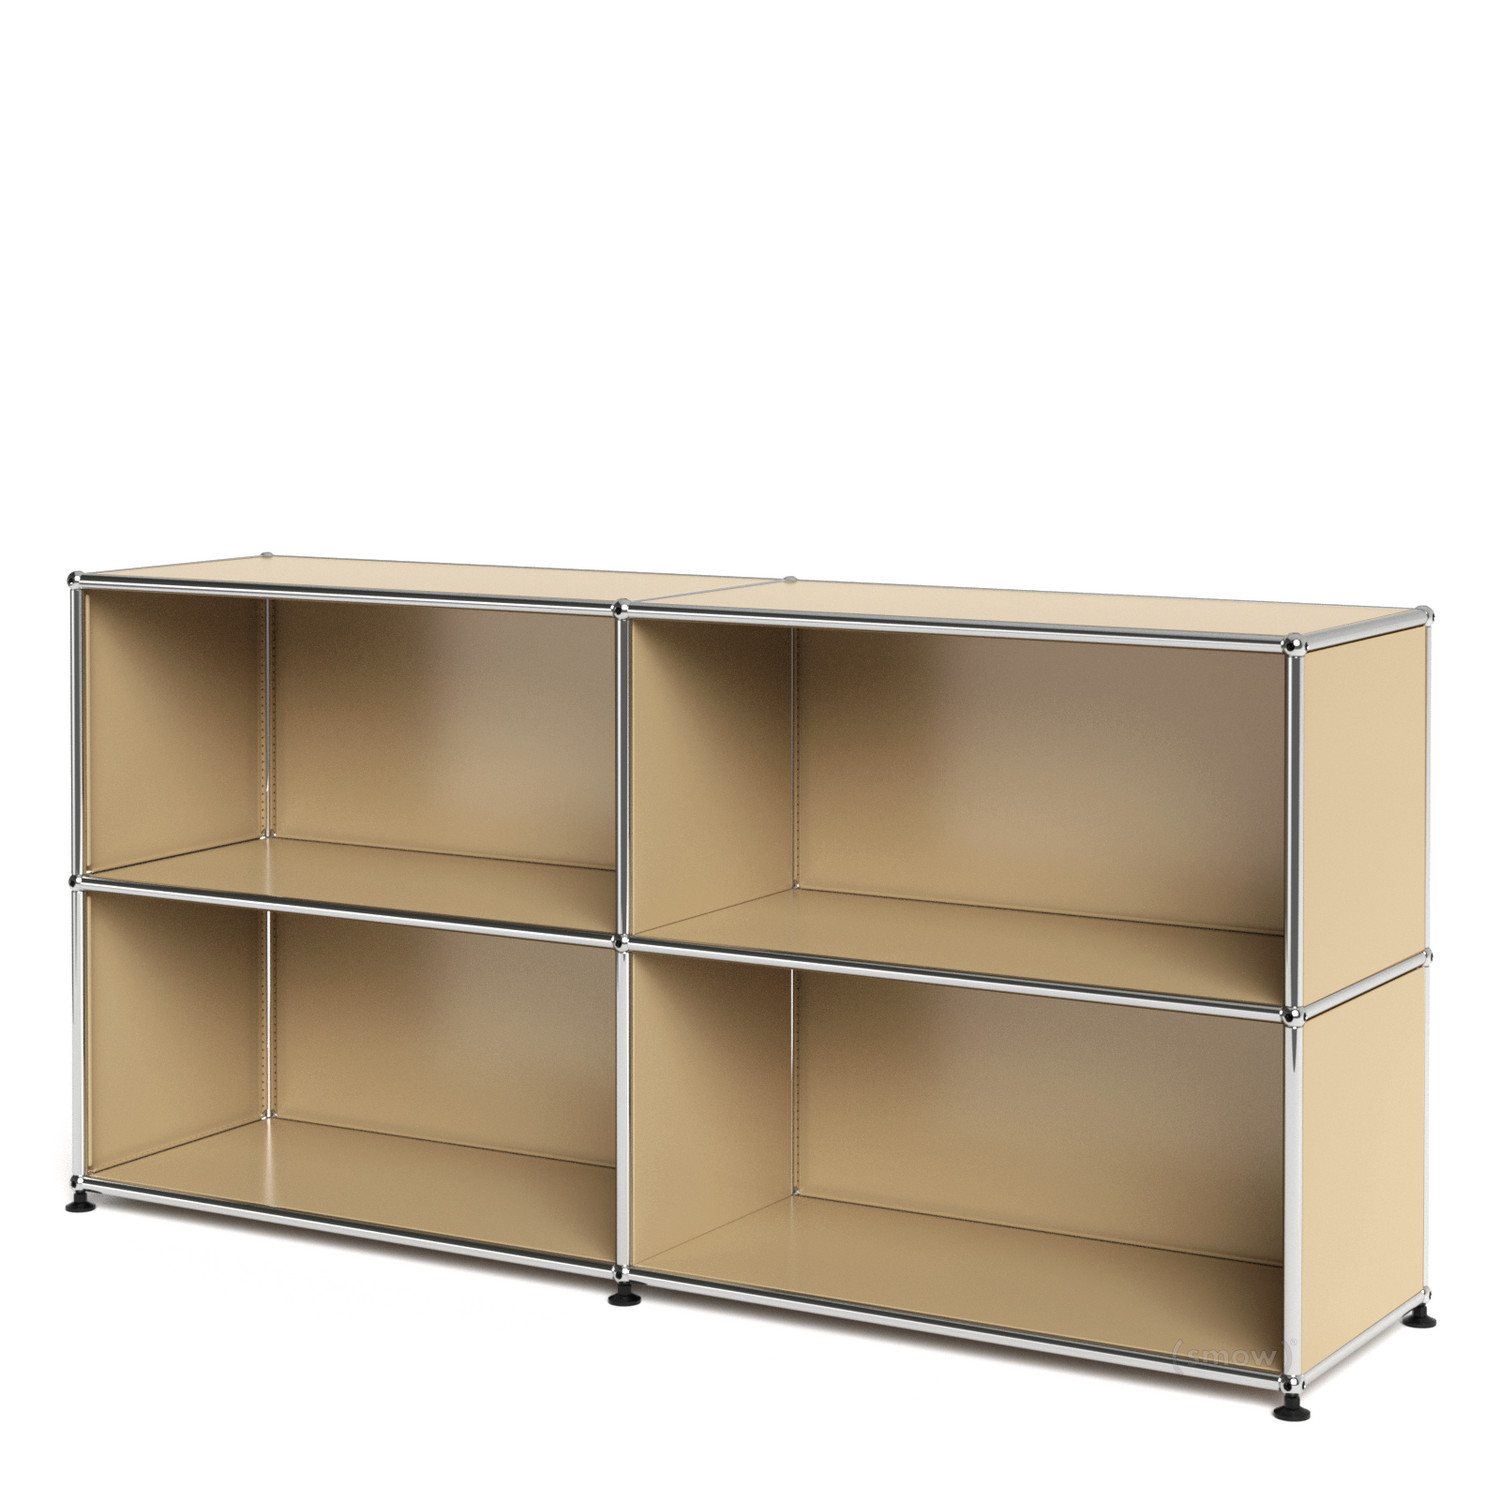 usm haller sideboard l open usm beige by fritz haller paul sch rer designer furniture by. Black Bedroom Furniture Sets. Home Design Ideas